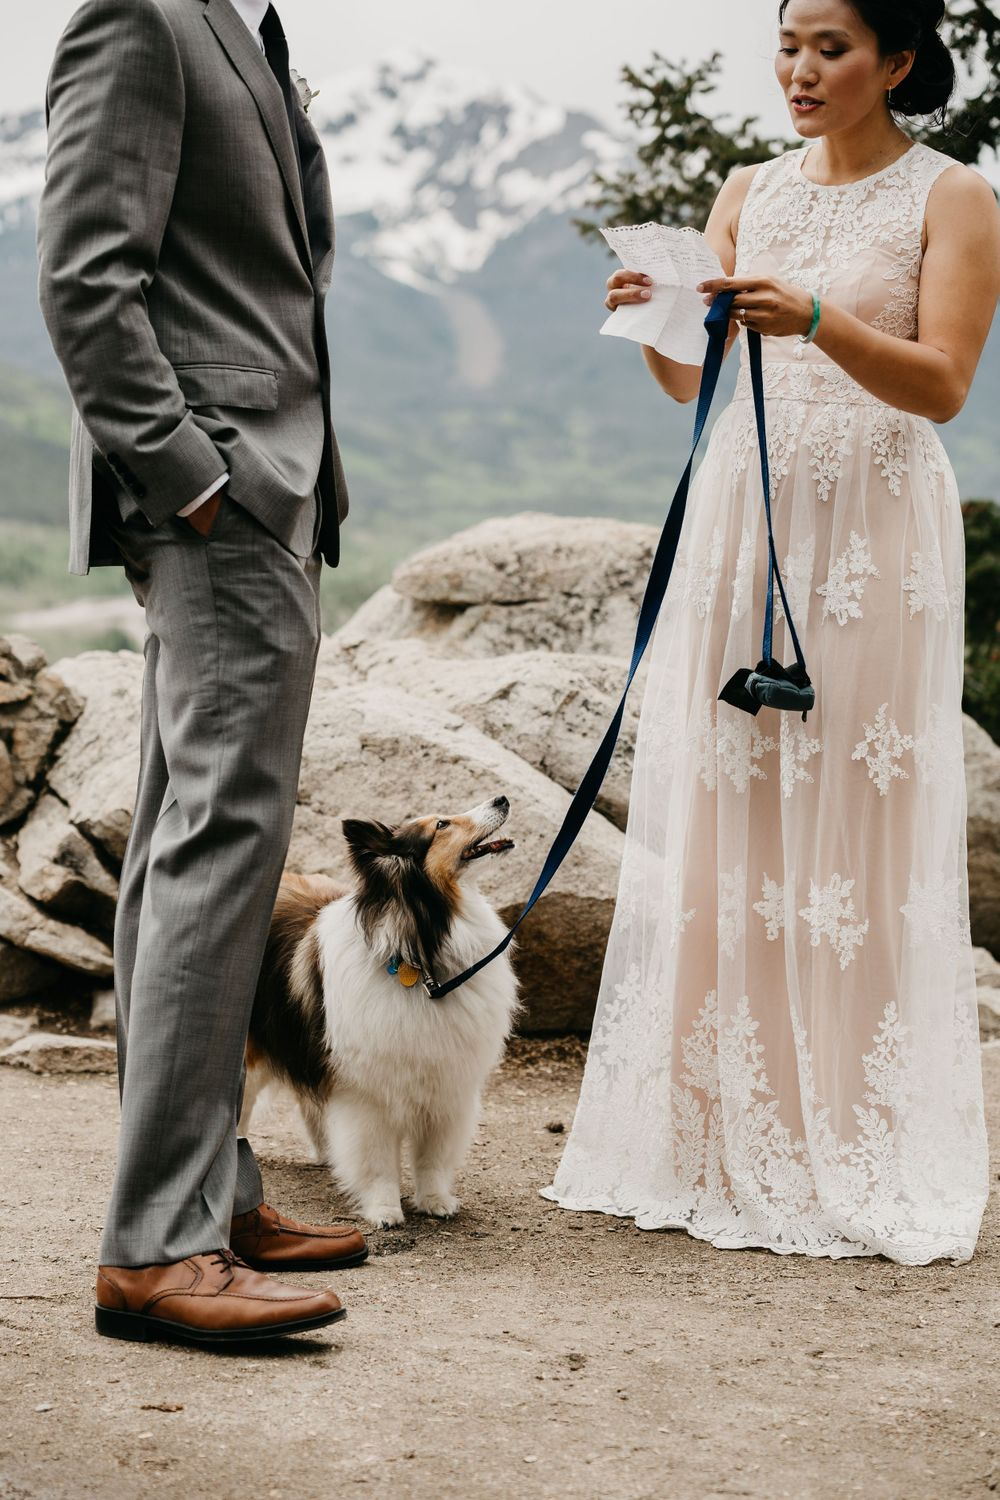 Exchanging vows boho wedding with dog Colorado